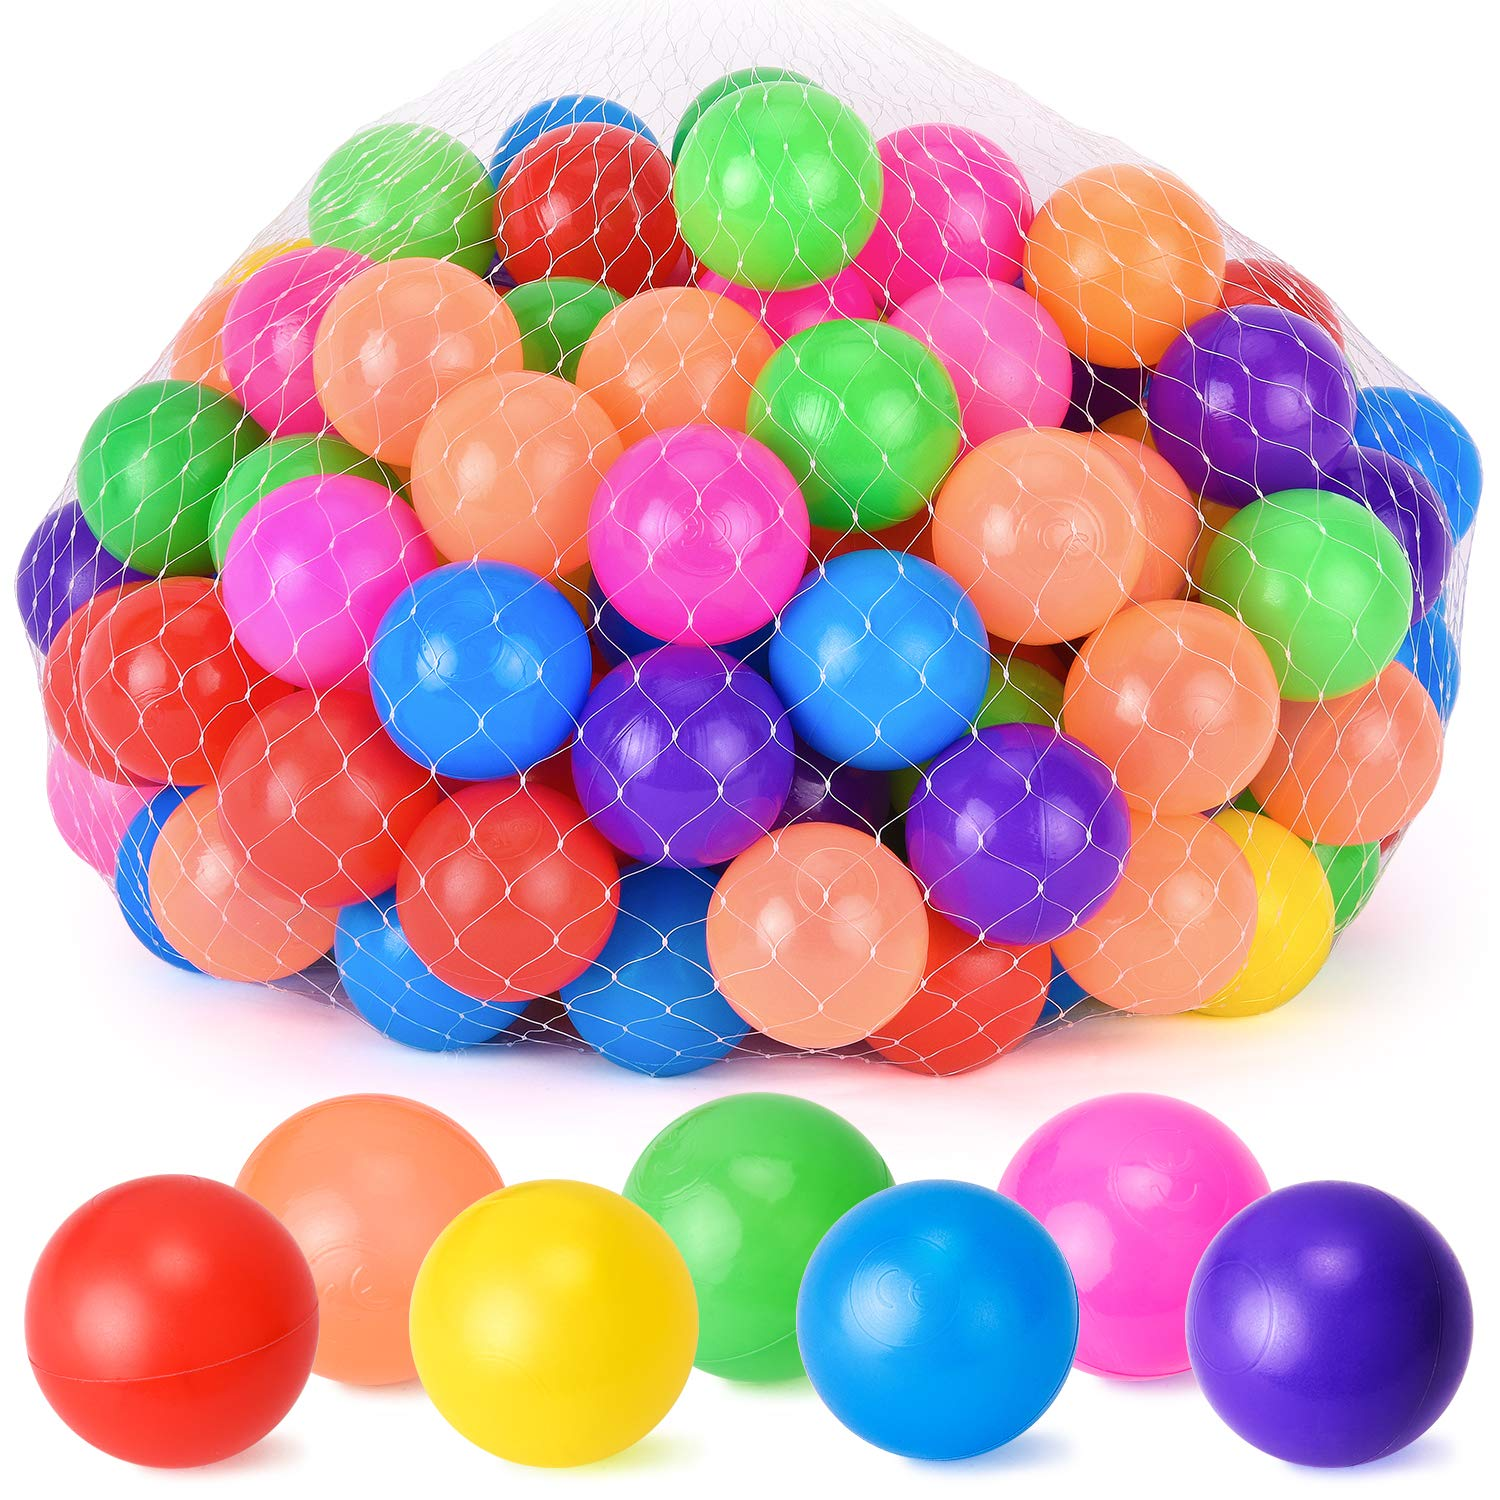 Rainbrace Ball Pit Balls, Soft Plastic Kids Play Balls Pack of 100 Crush Proof Balls - Non Toxic Phthalate Free BPA Free Ideal for Baby or Toddler Ball Pit, Kiddie Pool, Parties (7 Bright Colors)